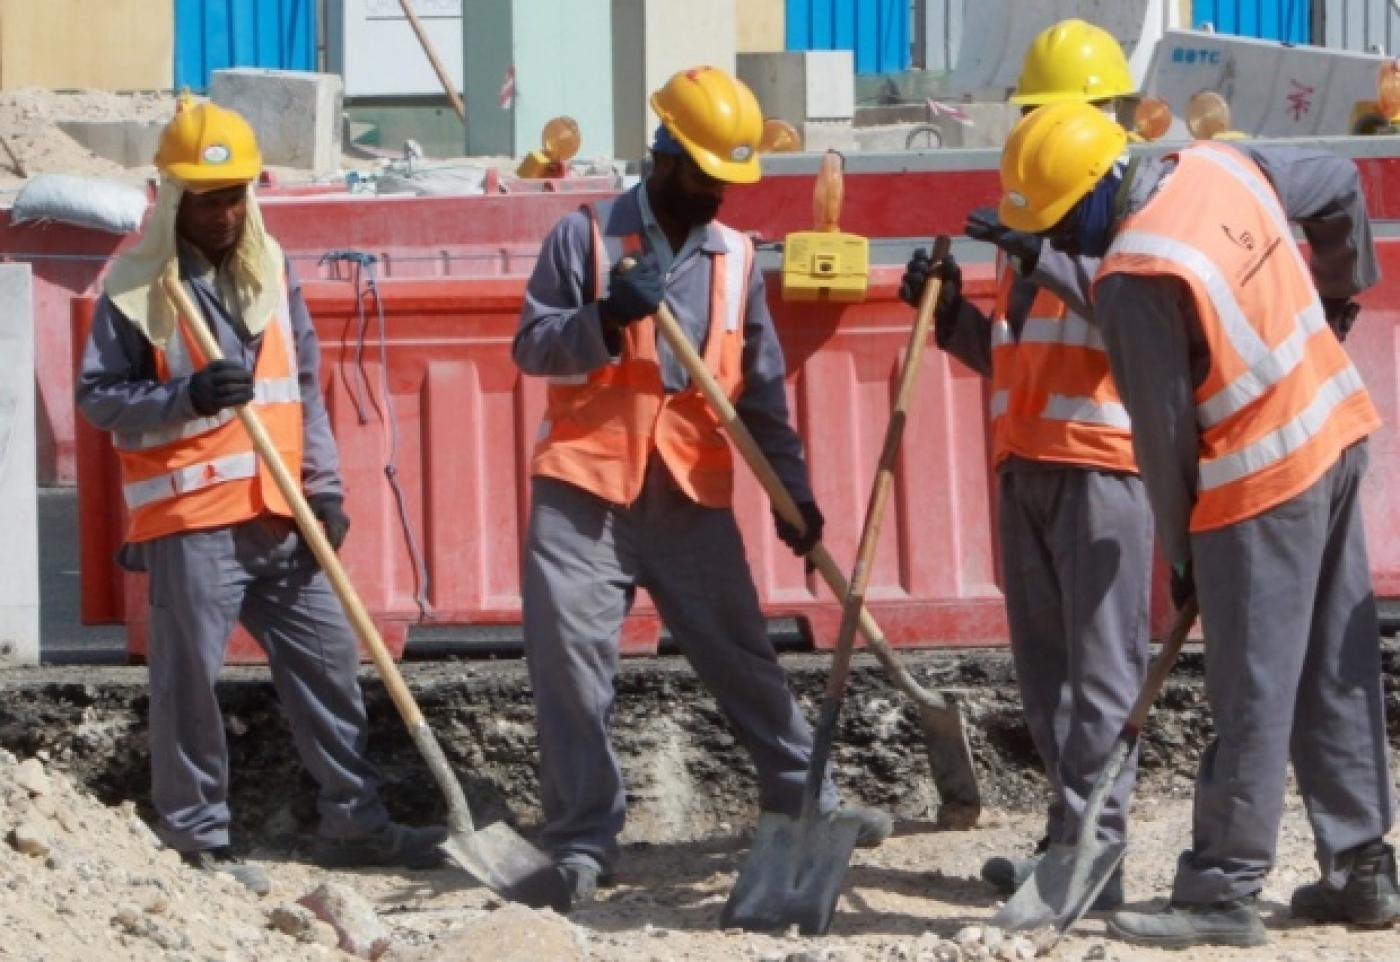 Hotel companies failing to protect migrant workers in Qatar